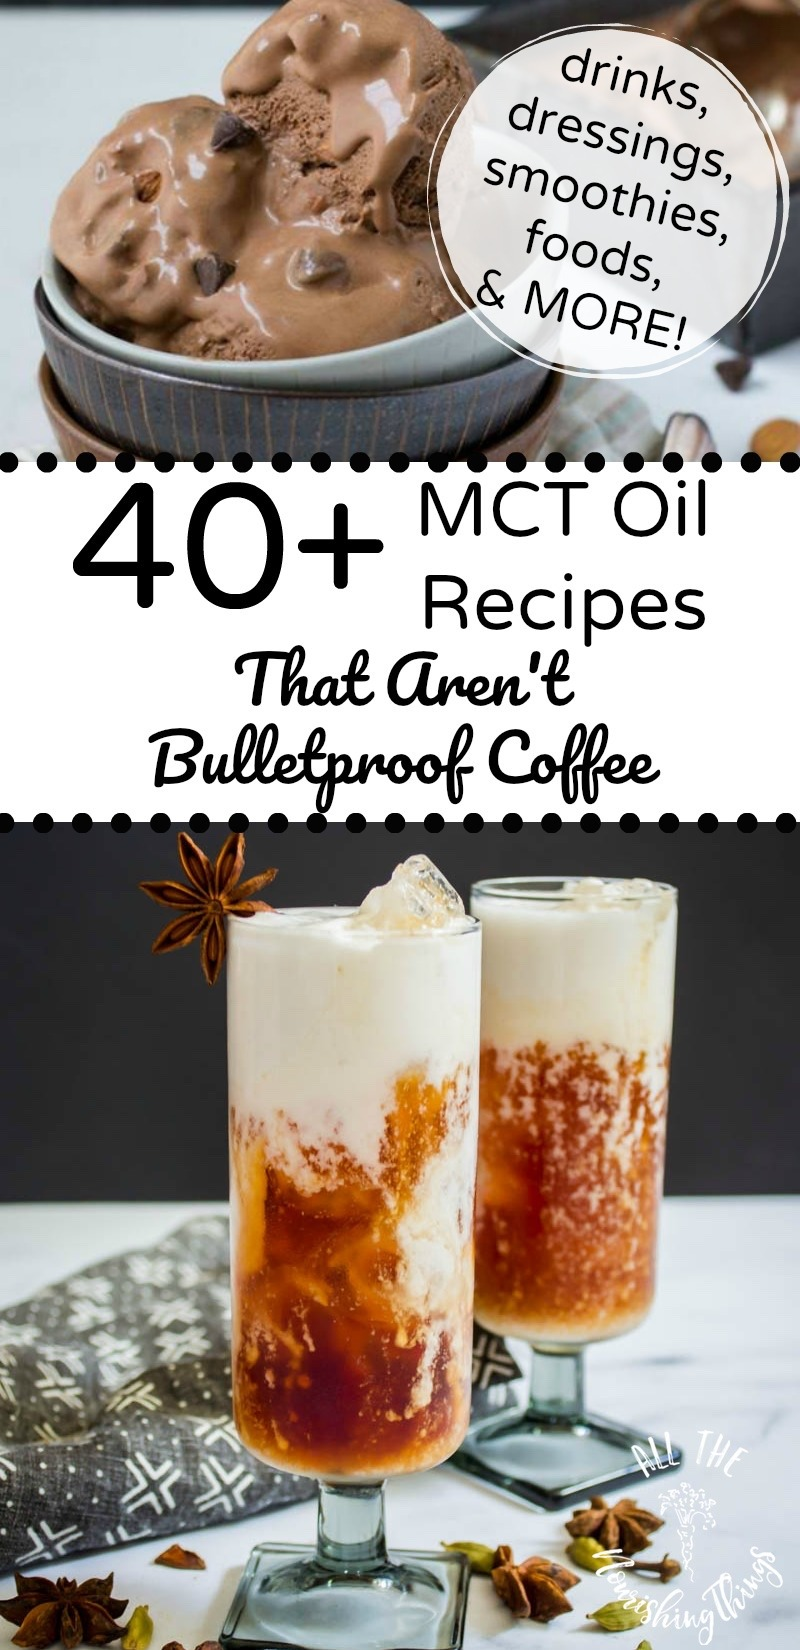 keto thai iced tea and ice cream with mct oil and text overlay